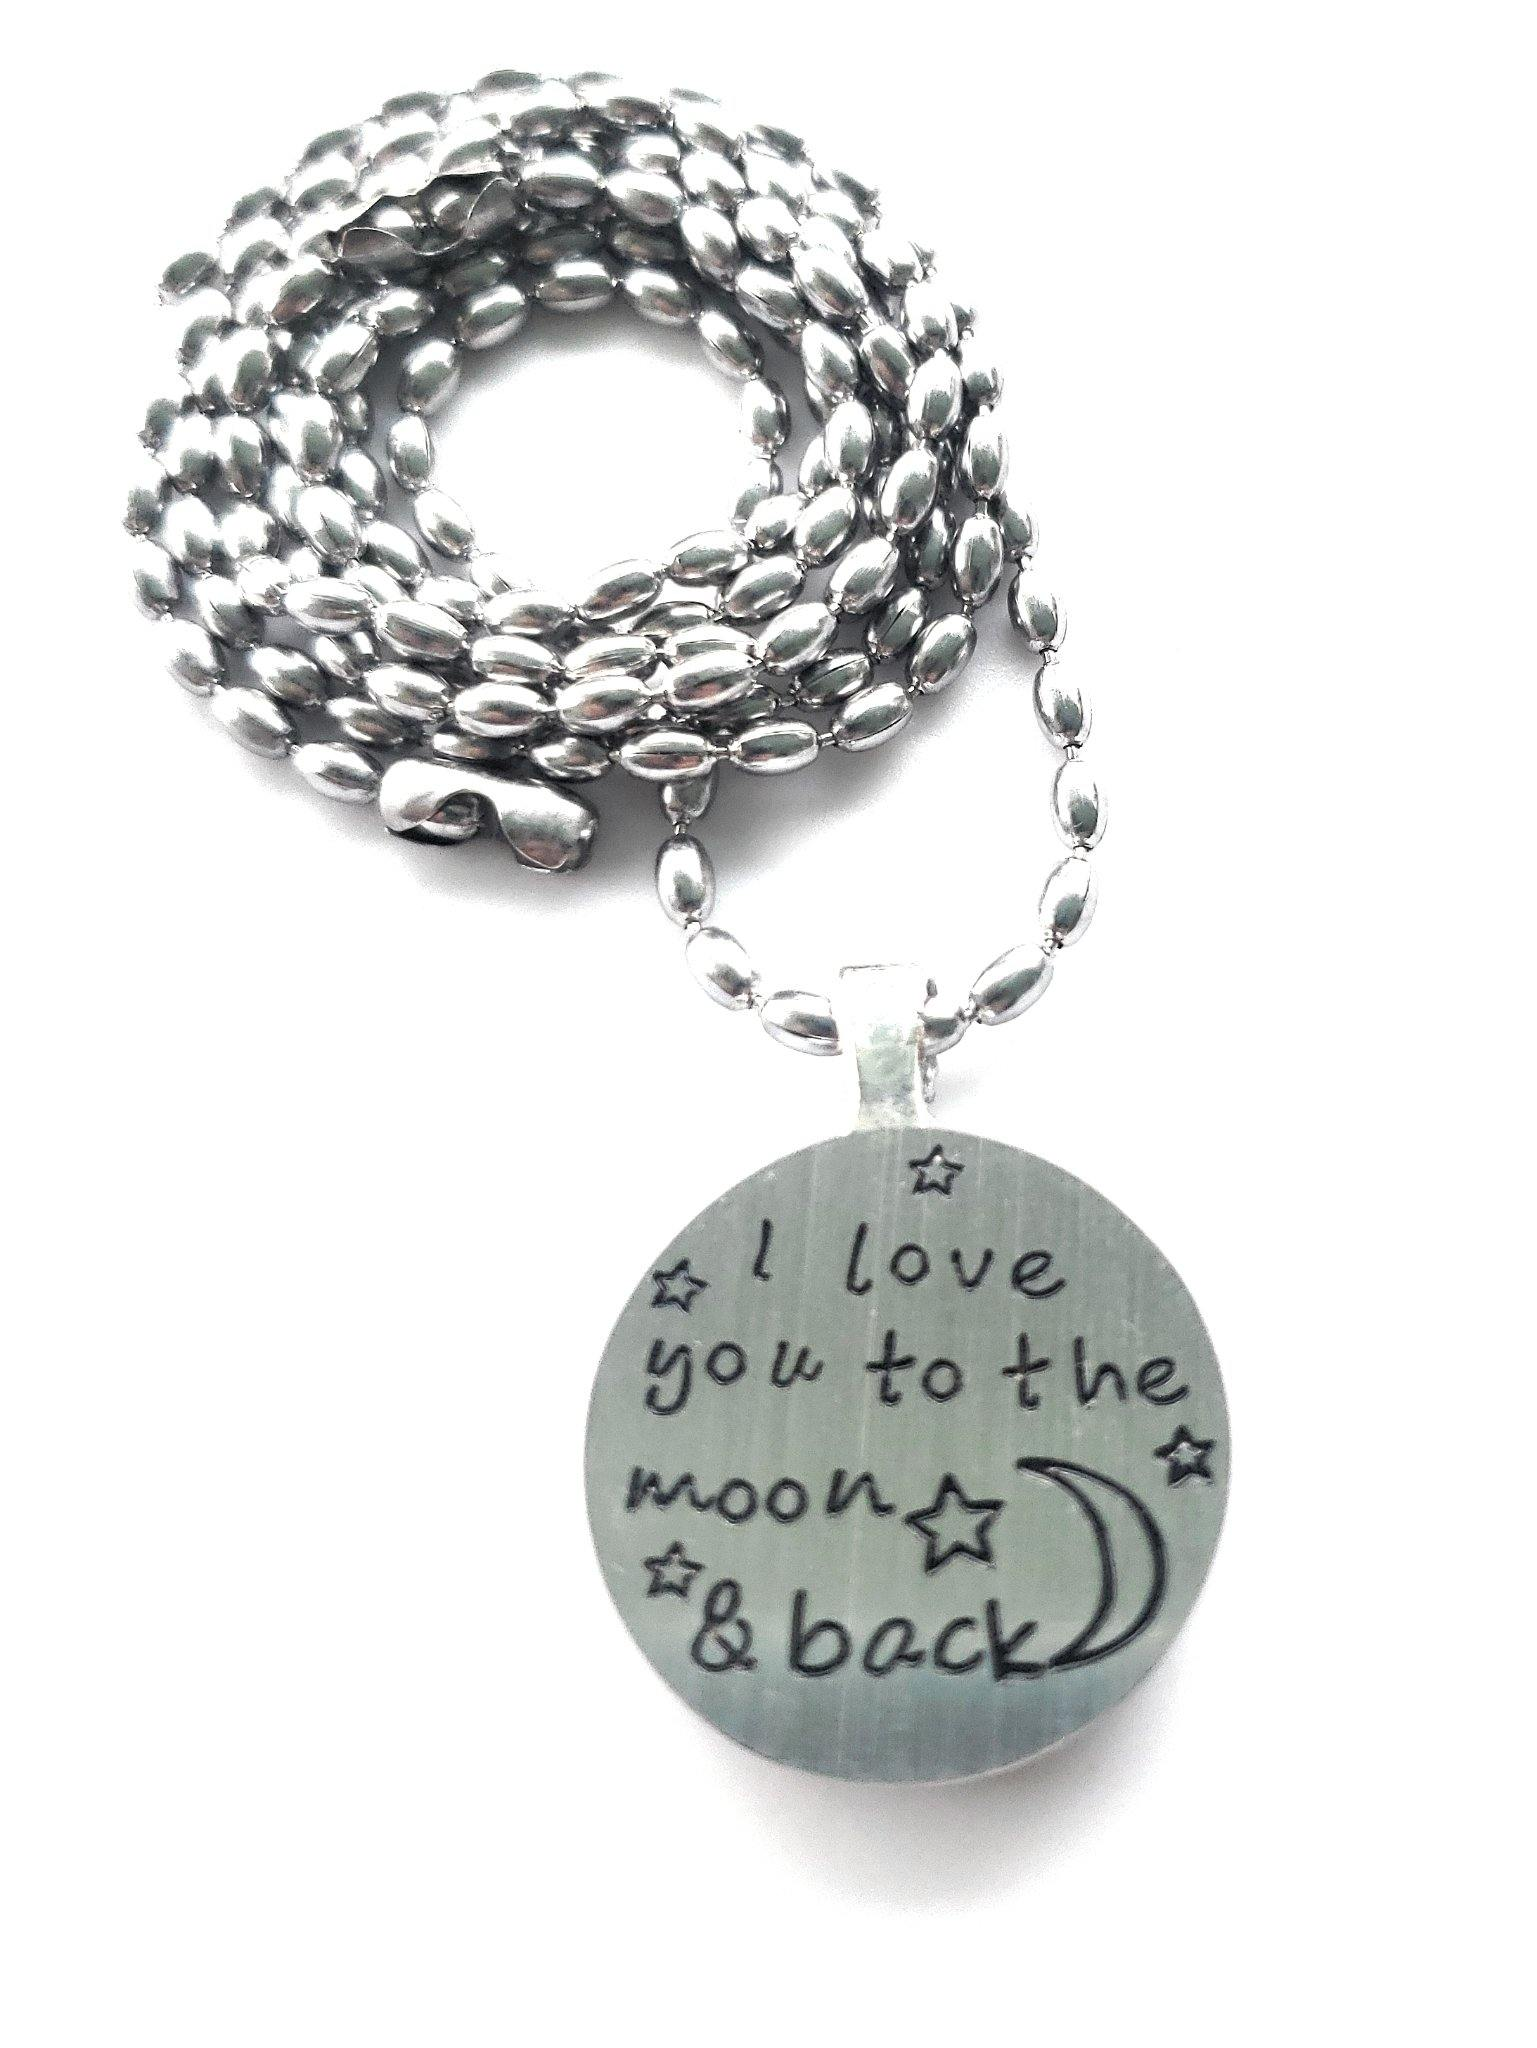 NEW DESIGN - Shungite Pendant: Love You to the Moon & Back